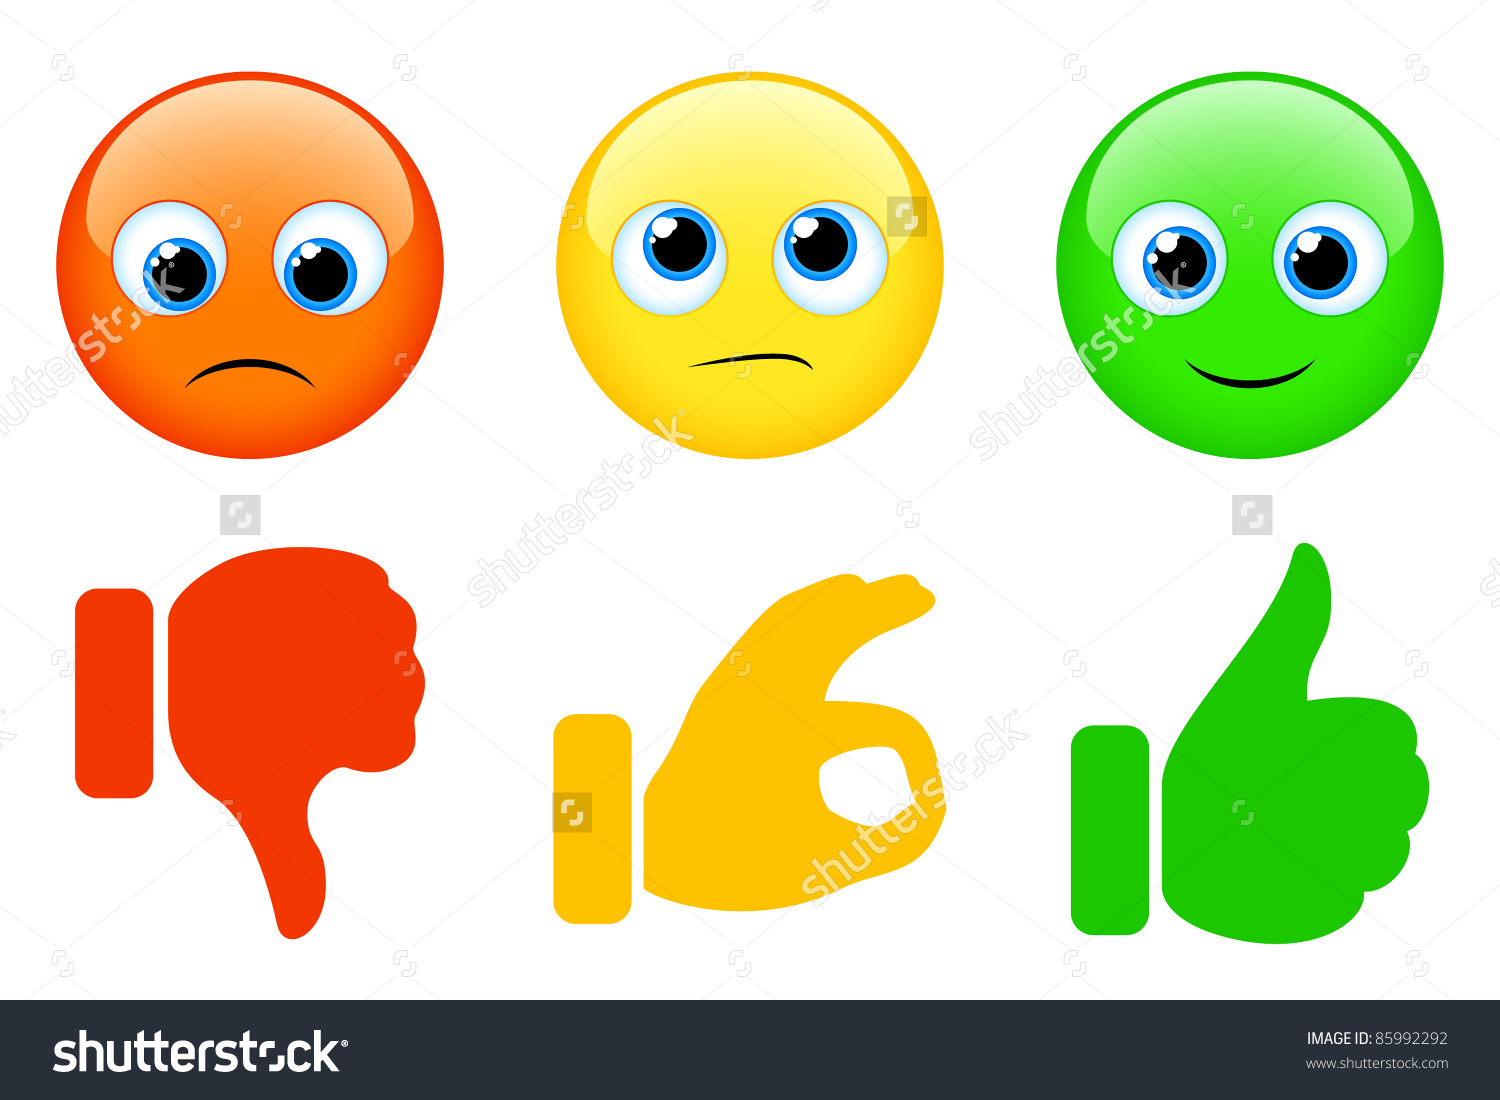 Clipart thumbs up and down vector transparent library Thumbs Up Thumbs Down Clipart & Thumbs Up Thumbs Down Clip Art ... vector transparent library